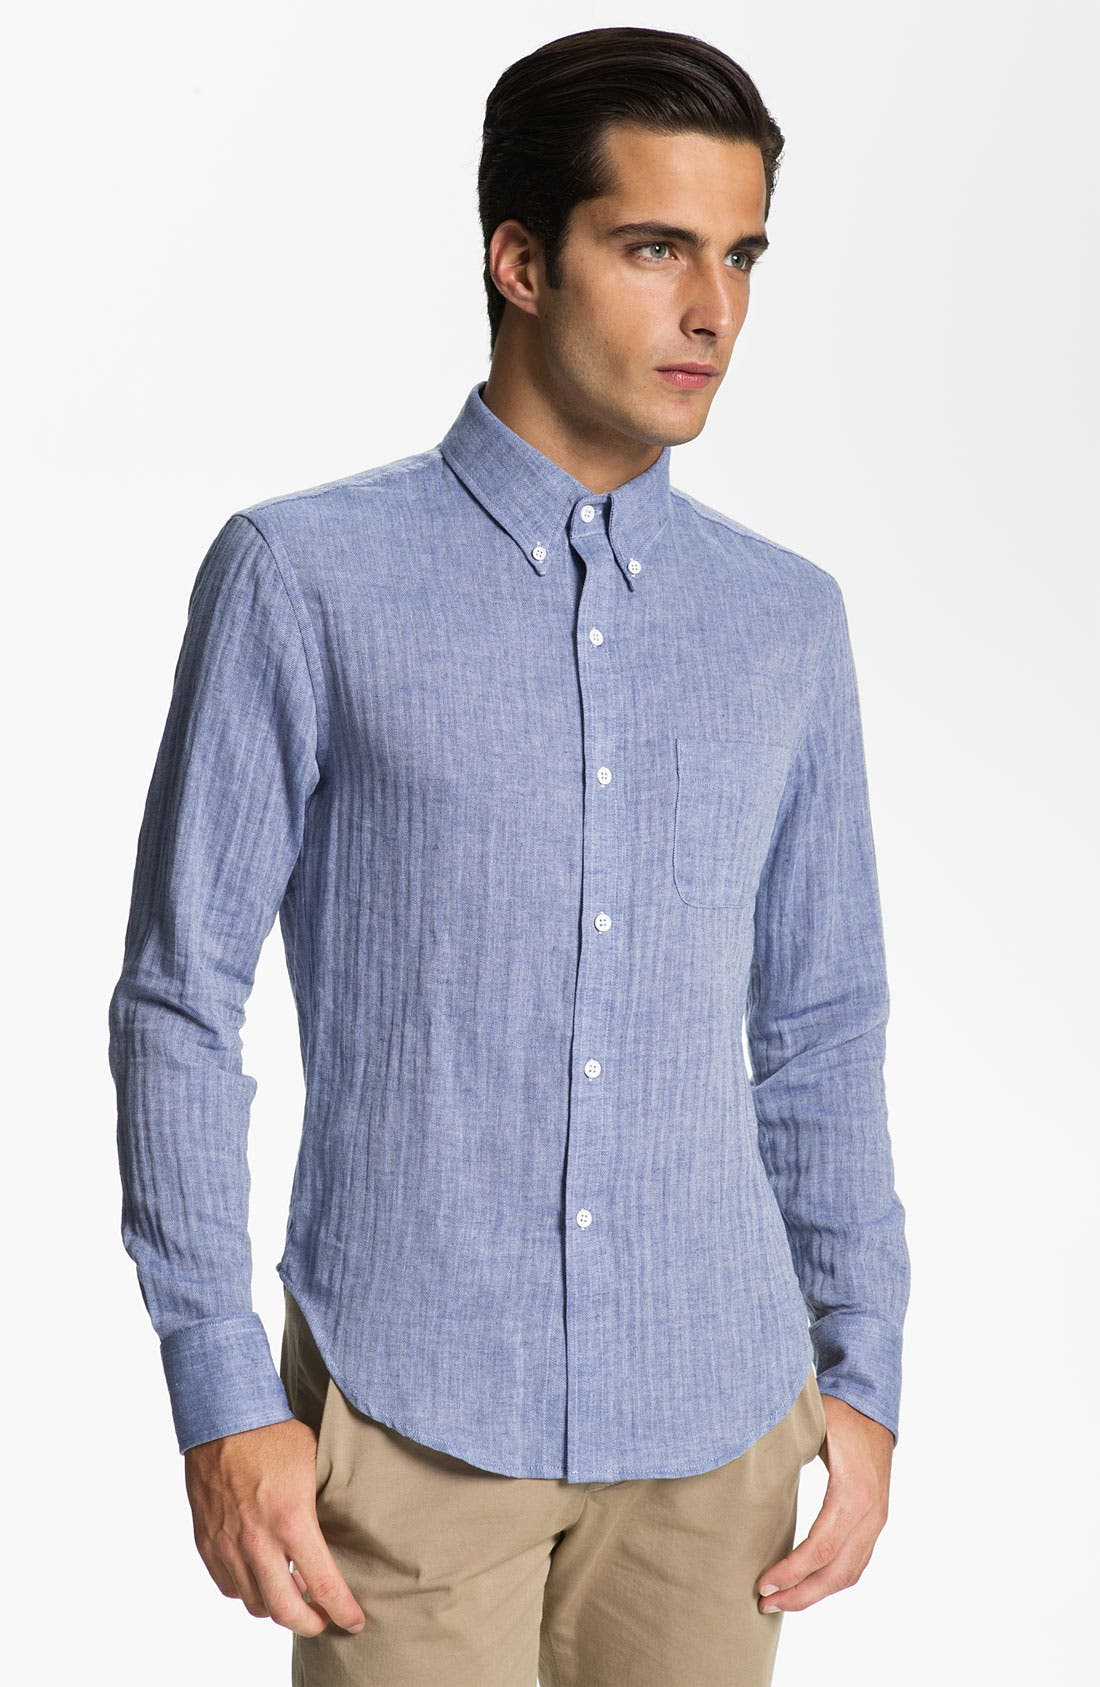 Alternate Image 1 Selected - Band of Outsiders Herringbone Woven Shirt